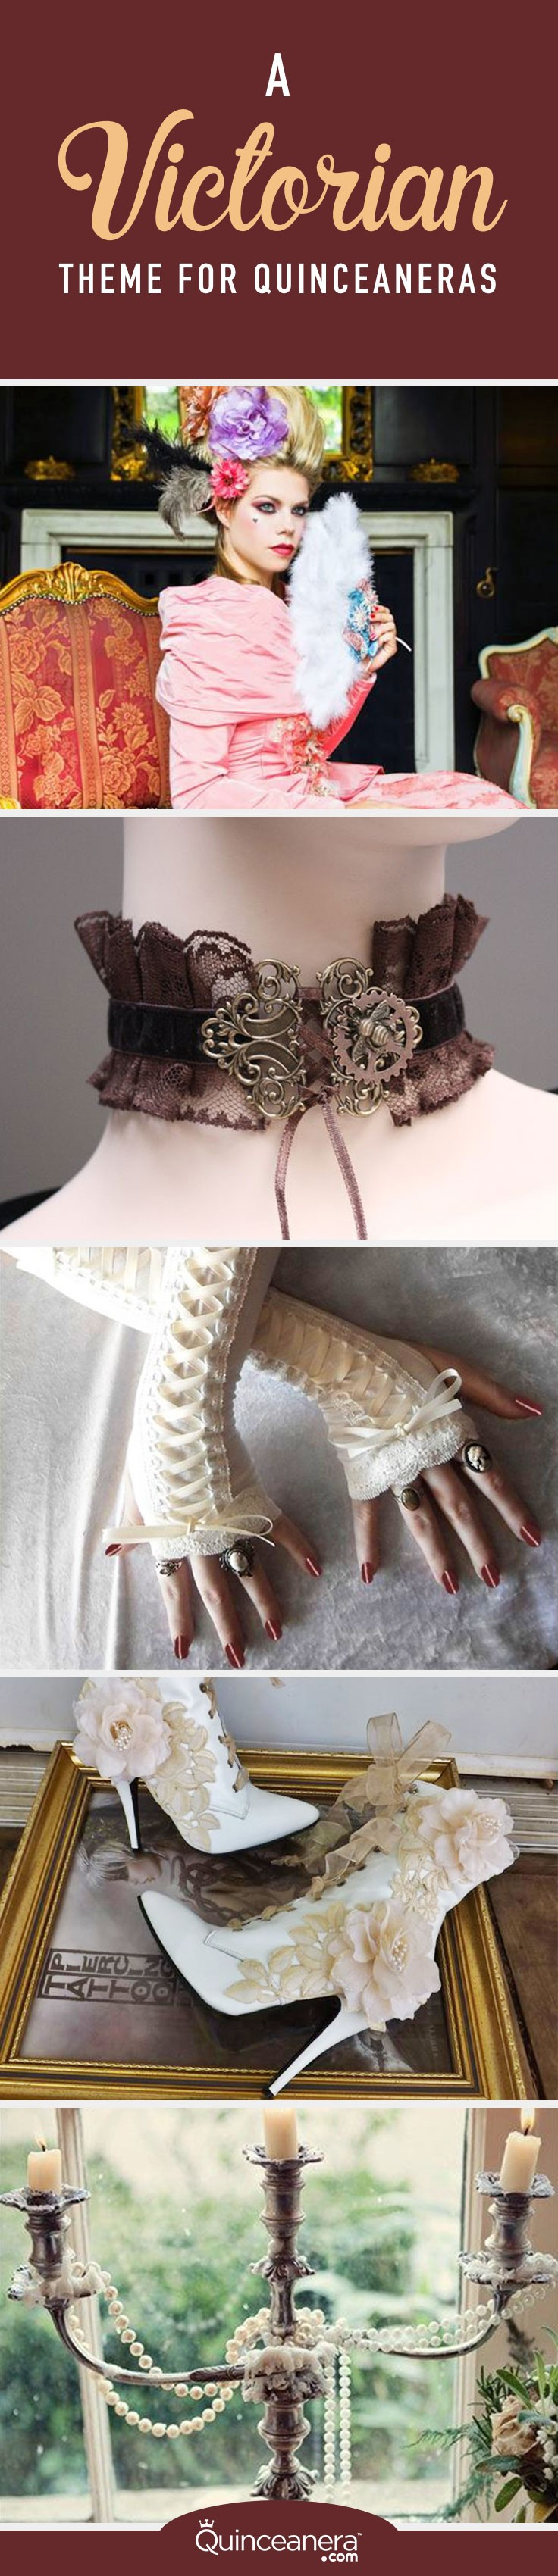 675448d0d1e Stay away from the typical and choose a Victorian theme for quinceaneras